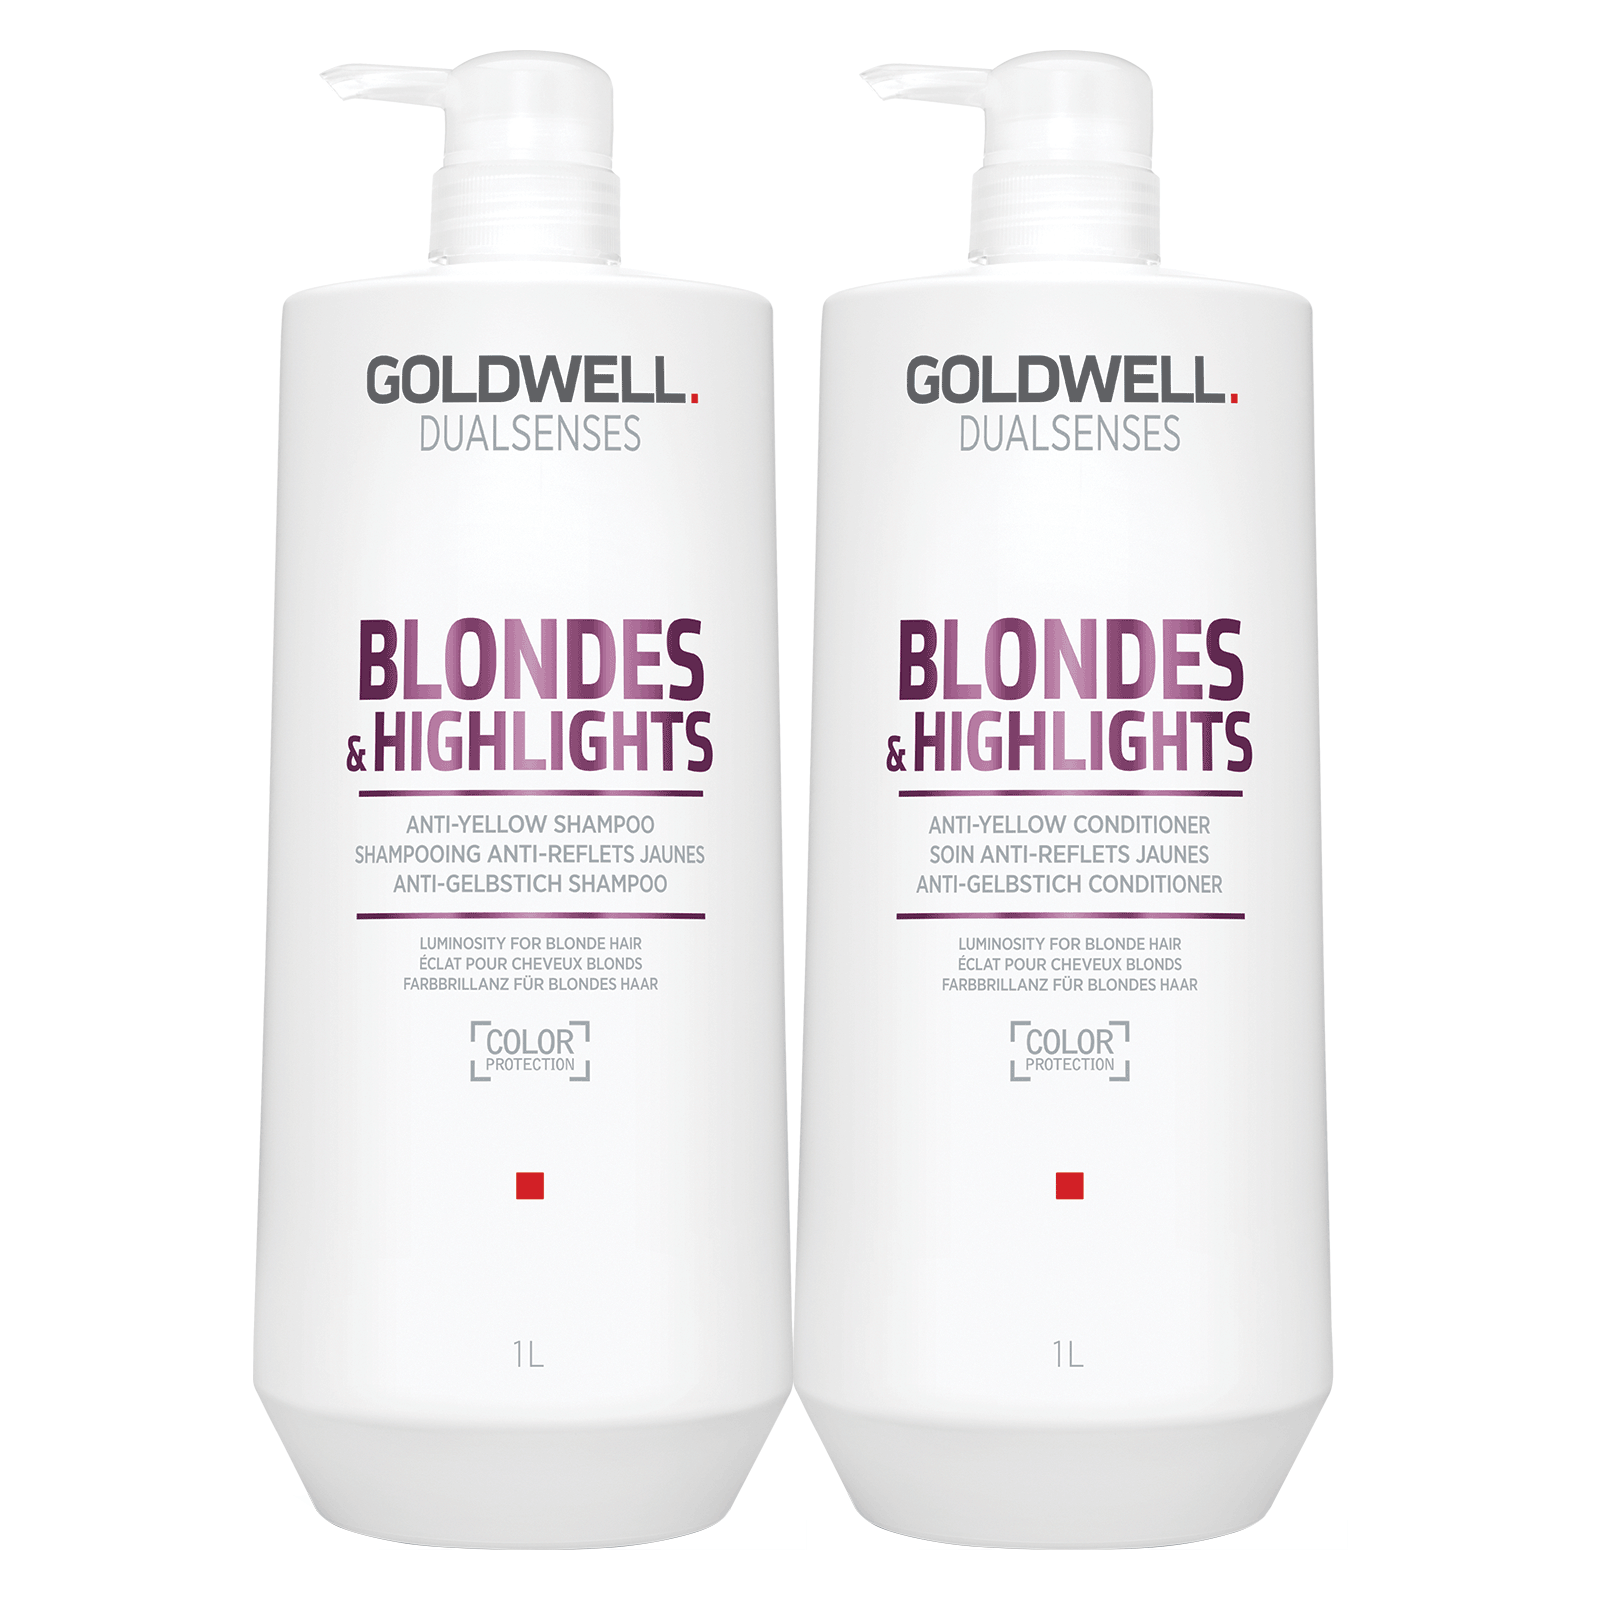 Dualsenses Blonde & Highlights Shampoo,Conditioner Liter Duo